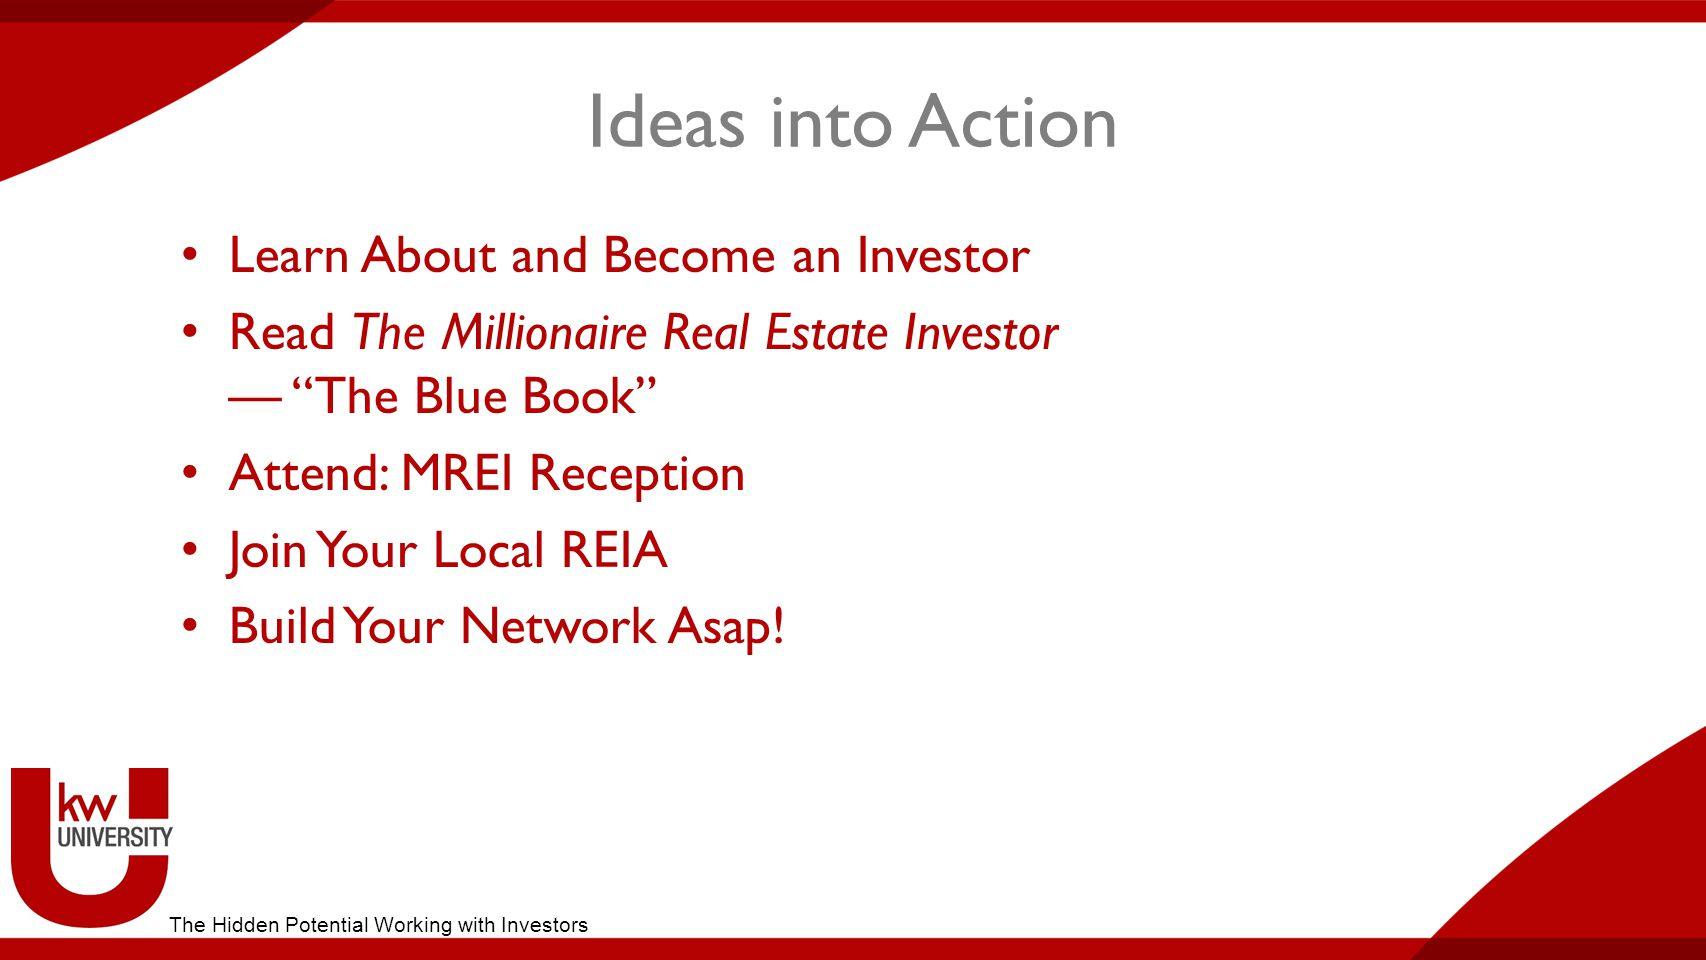 Ideas into Action Learn About and Become an Investor Read The Millionaire Real Estate Investor — The Blue Book Attend: MREI Reception Join Your Local REIA Build Your Network Asap.